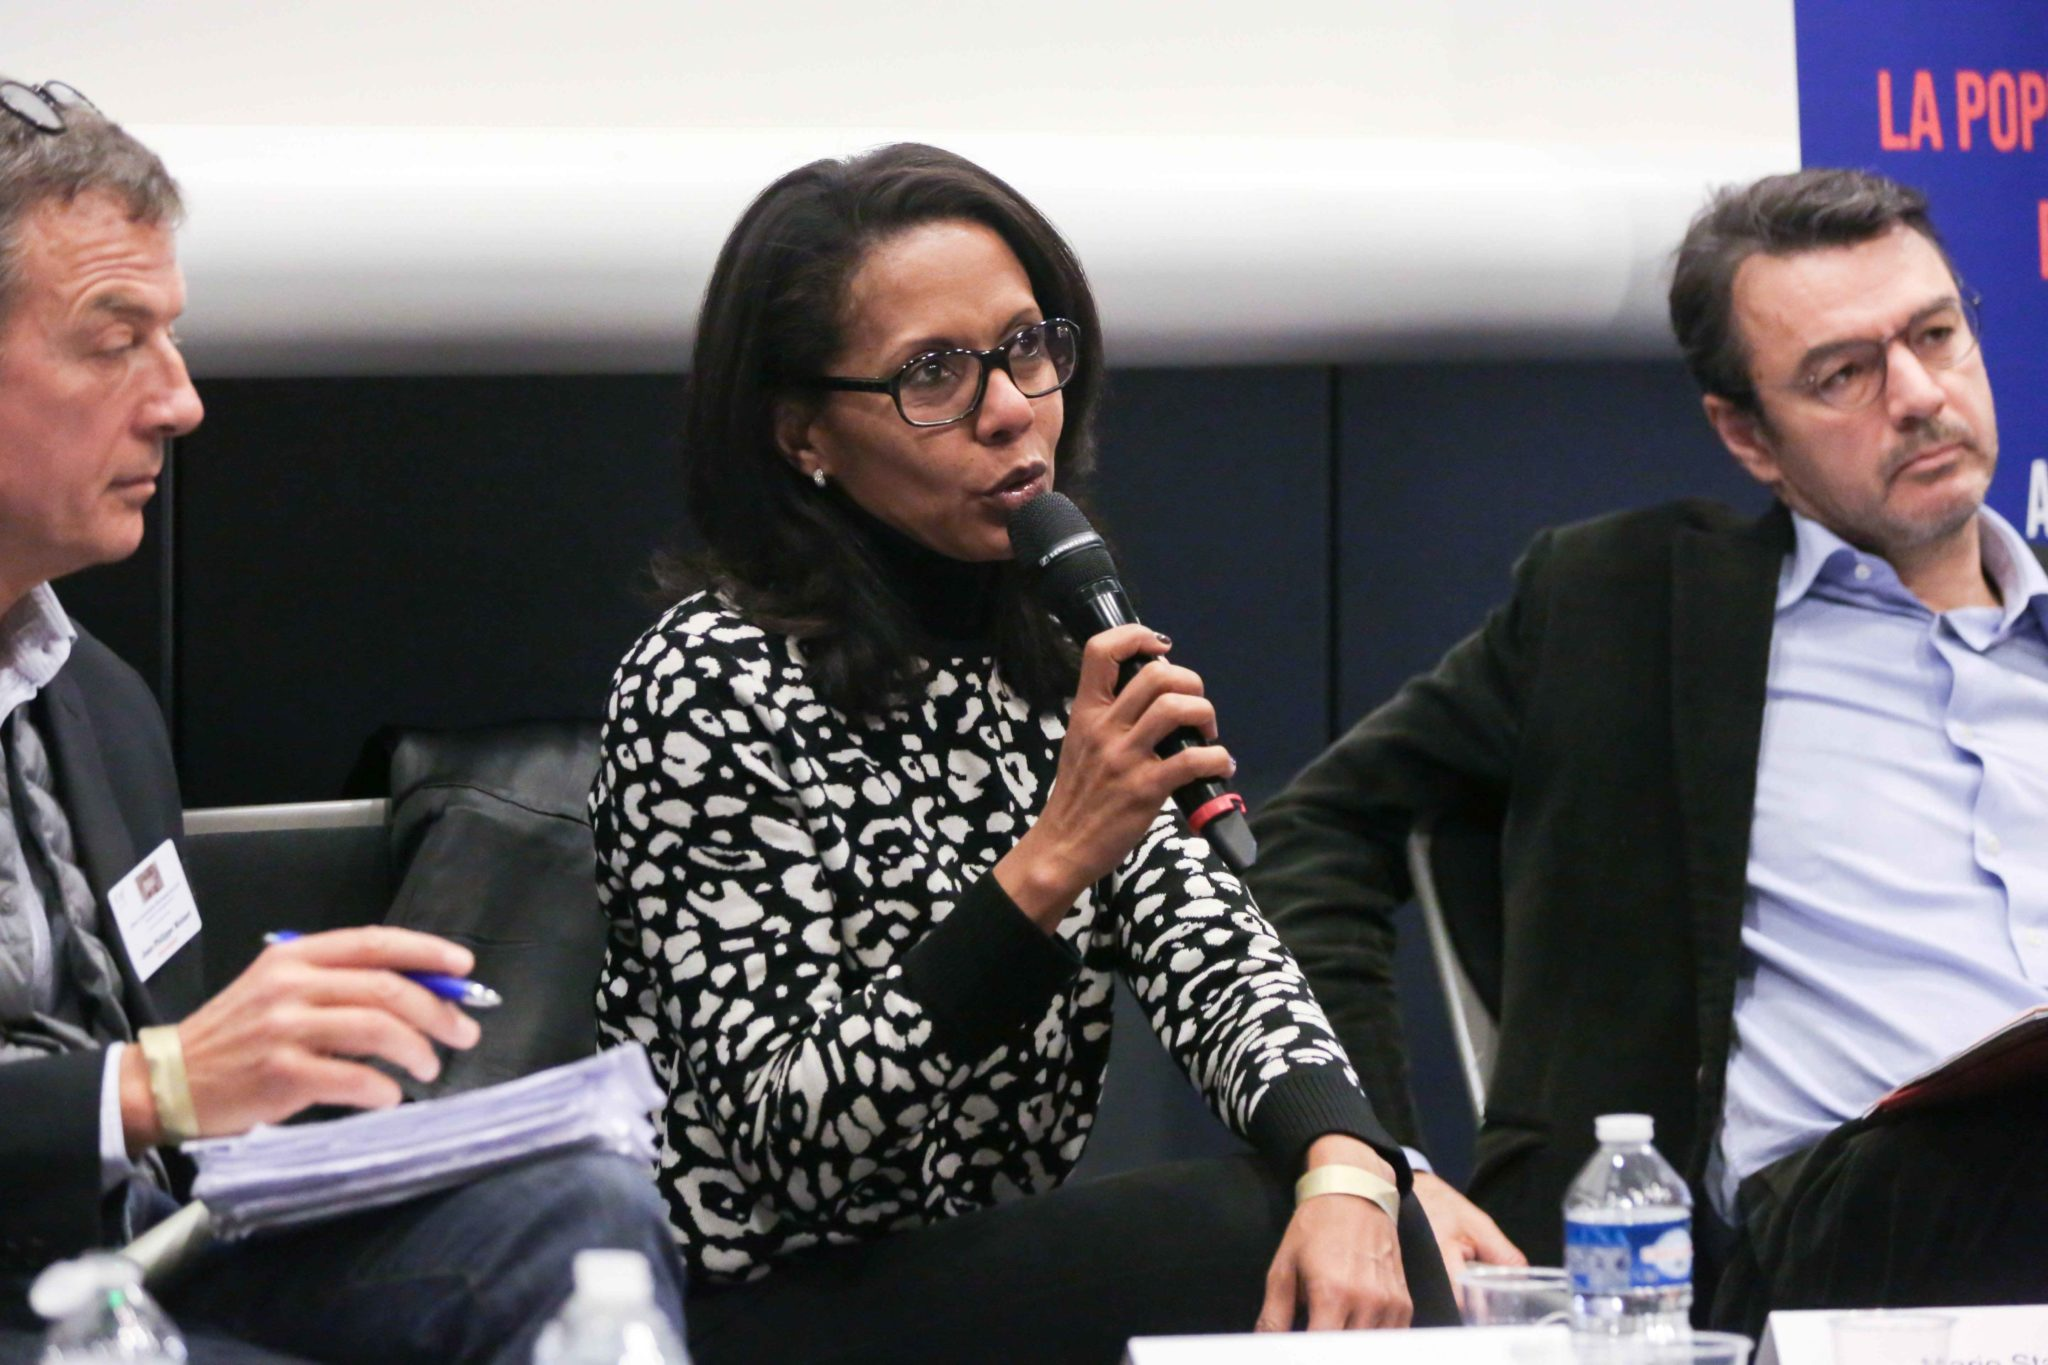 French journalist Audrey Pulvar (R) takes part in the 10th national convention of the Representative Council of Jewish Institutions of France (CRIF - Conseil Representatif des Institutions juives de France) on November 17, 2019, at Le Palais des Congres in